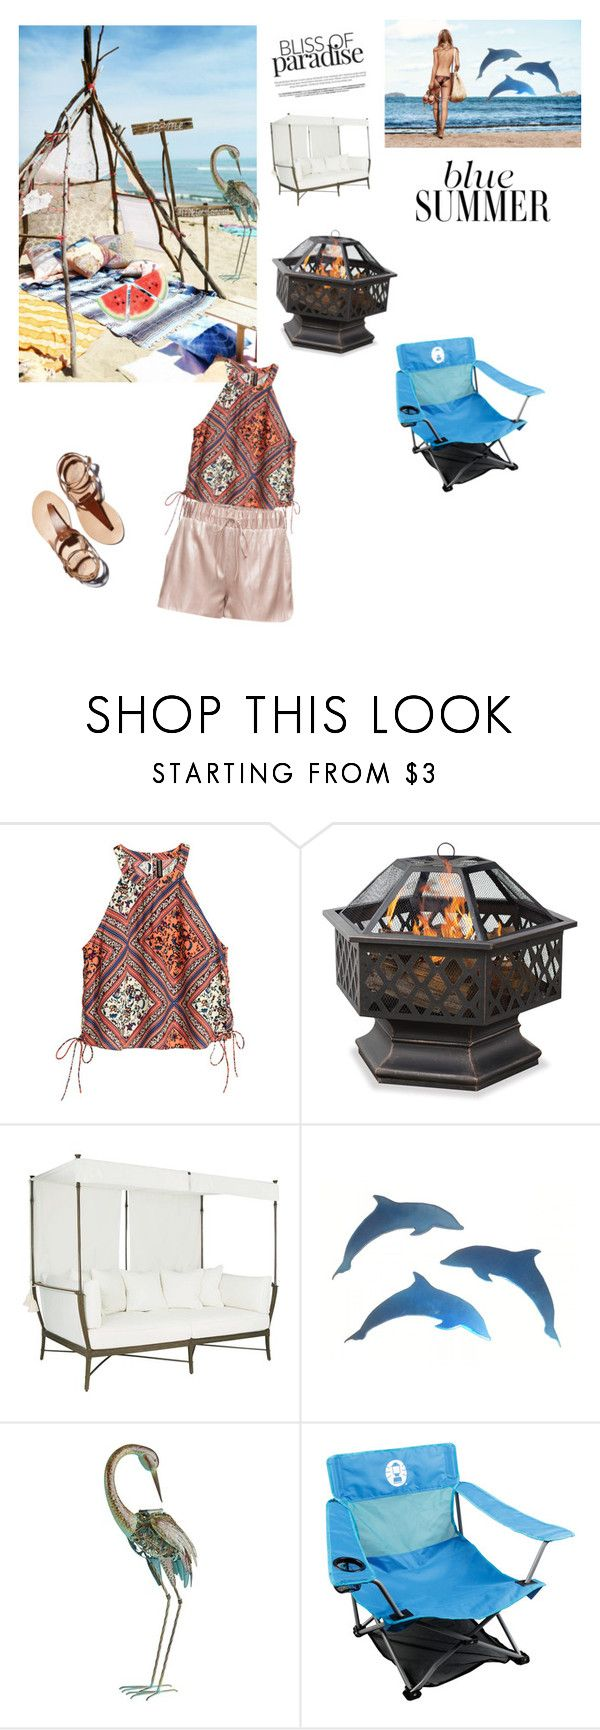 """Glamping"" by rowdyscouty-1 ❤ liked on Polyvore featuring interior, interiors, interior design, home, home decor, interior decorating, Pier 1 Imports, Coleman and glamping"